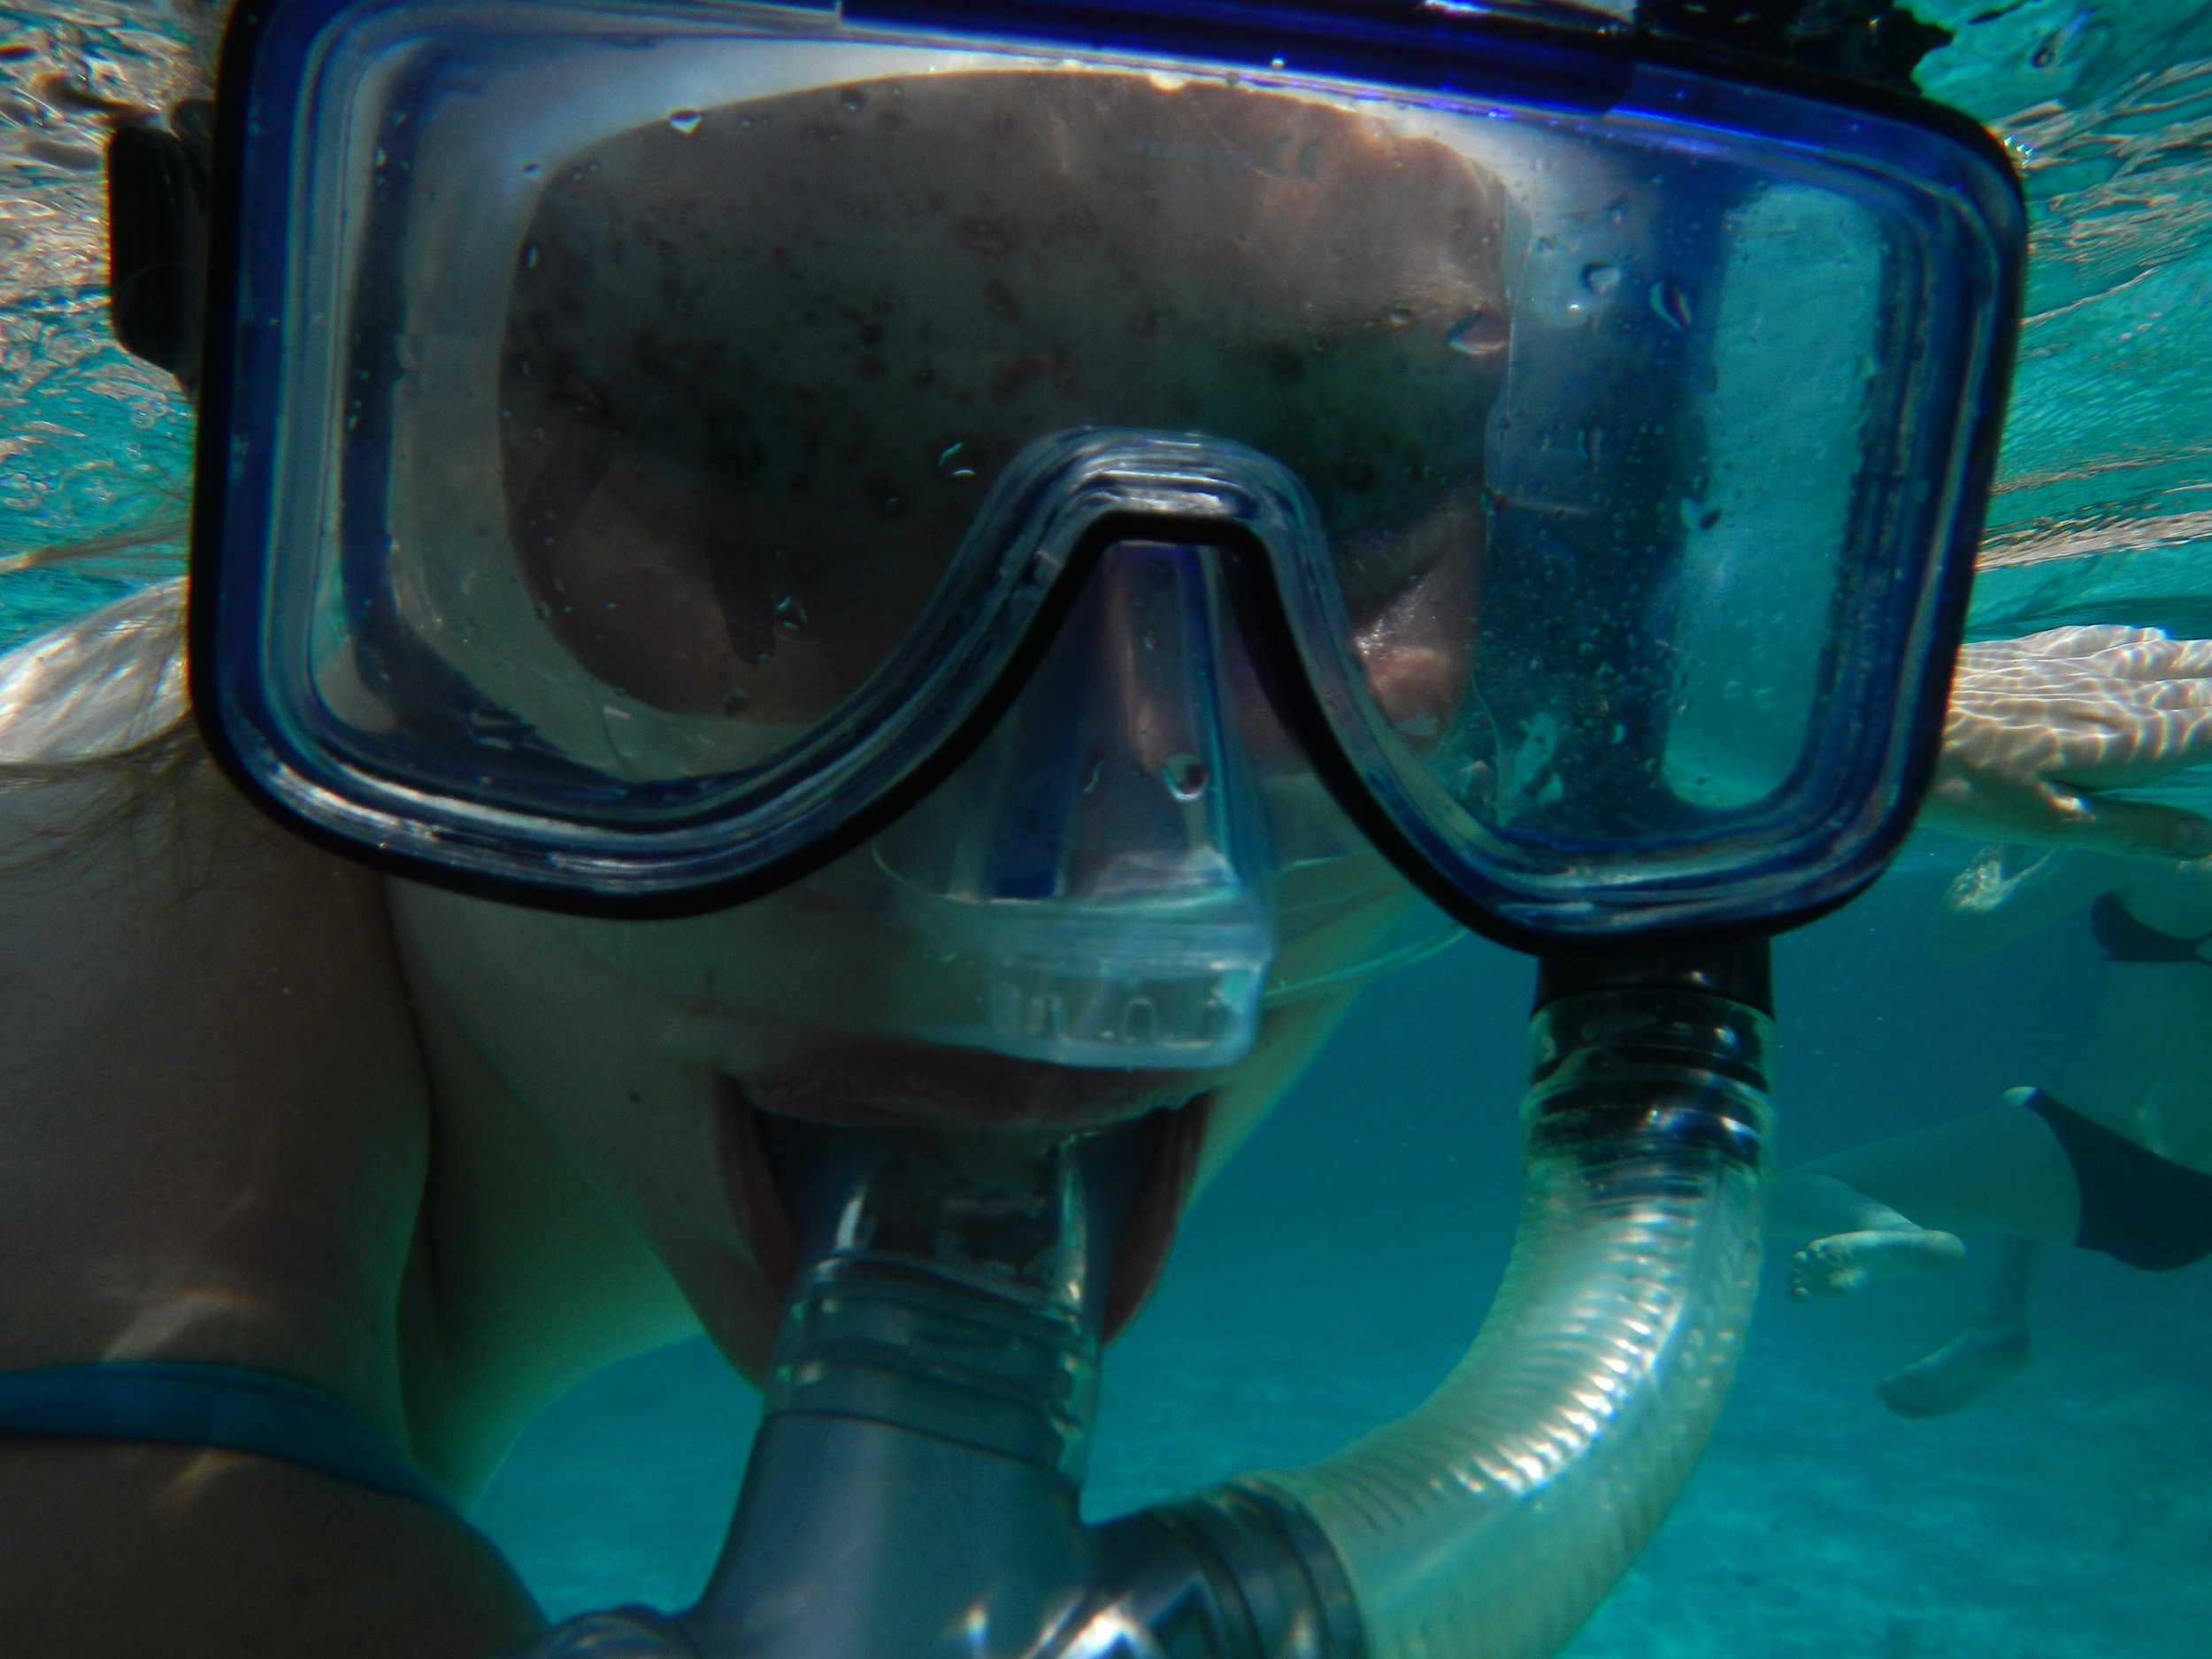 scuba-snorkel-bahamas-treasure-coral-padi-stuart-cove's-smith-shark-dive-temperature-bahamas-water-warm-bathing-suit-goggles-fins-tank-regulator-deep-shallow-blake-lively-nurse-sharks-bite-underwater